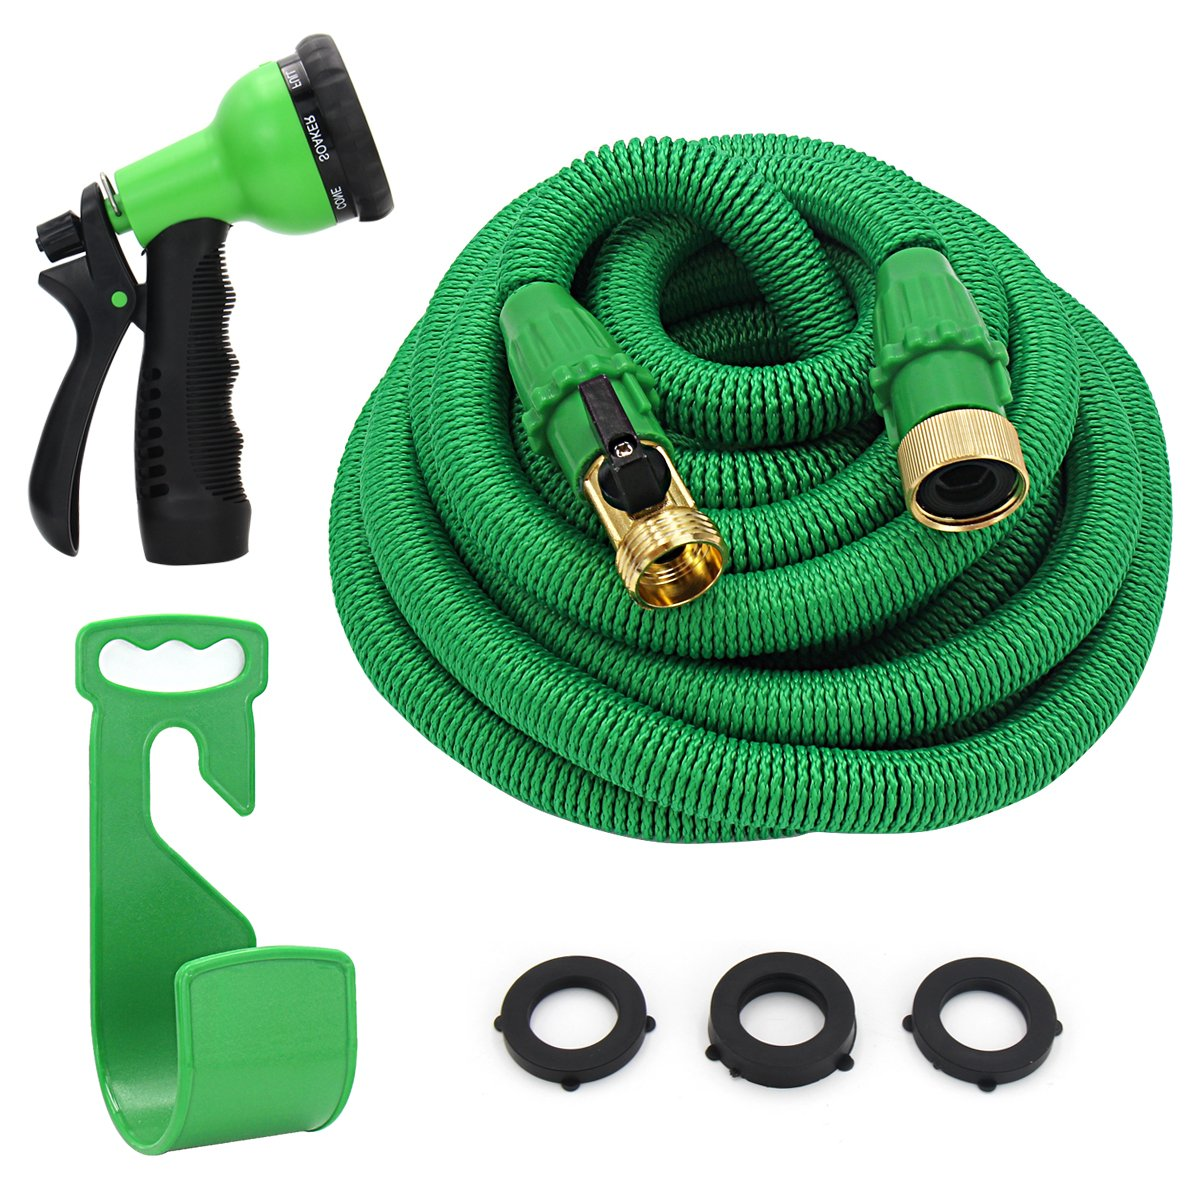 "YEAHBEER 50ft Expandable Garden Hose,Durable Lightweight Expandable Water Hose,3/4"" Patent Leak-Proof Connector,8-Mode High Pressure Spray Nozzles,Free Storage Bag + Hook"